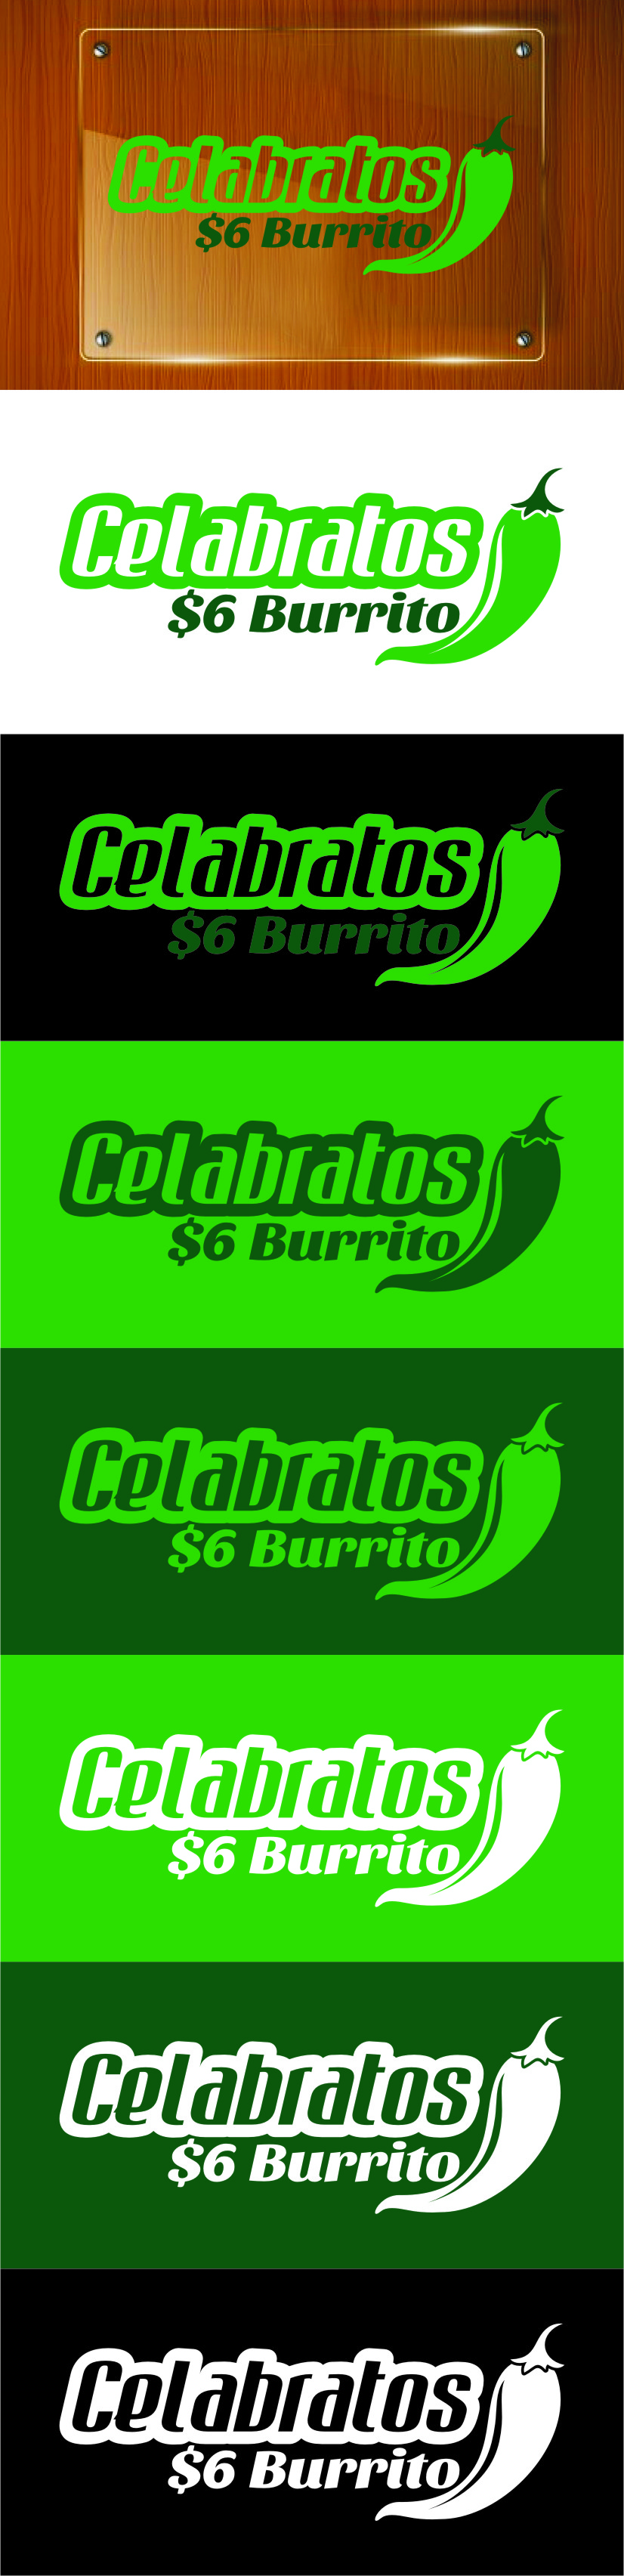 Logo Design by RoSyid Rono-Rene On Java - Entry No. 75 in the Logo Design Contest Imaginative Logo Design for Celabratos.